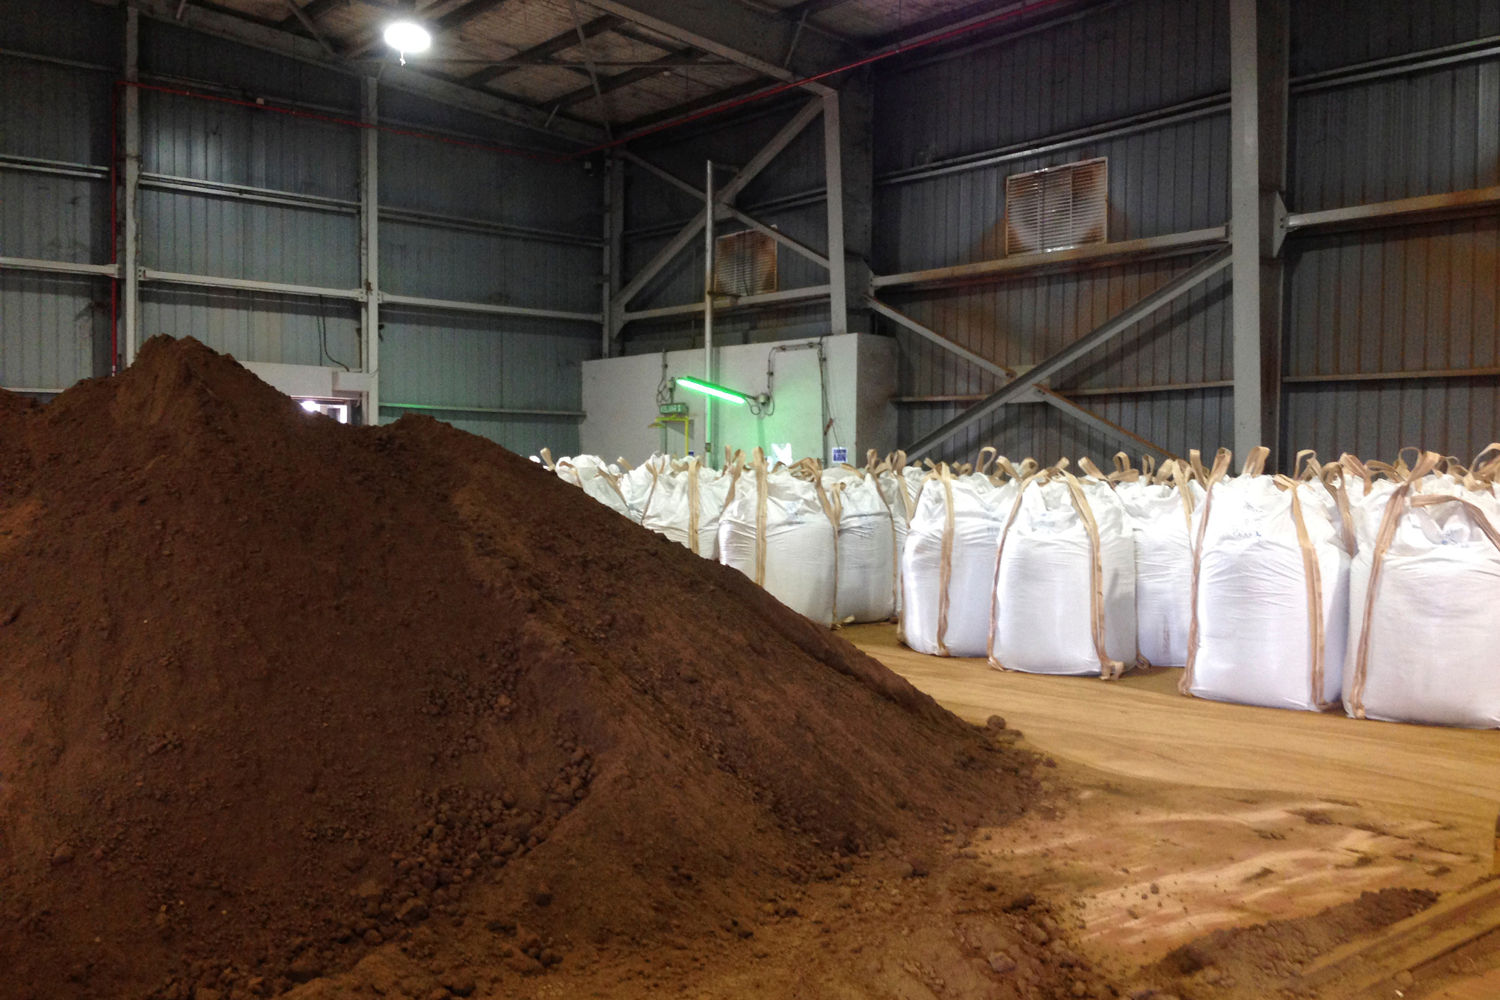 US approves Australian company to operate rare earths facility